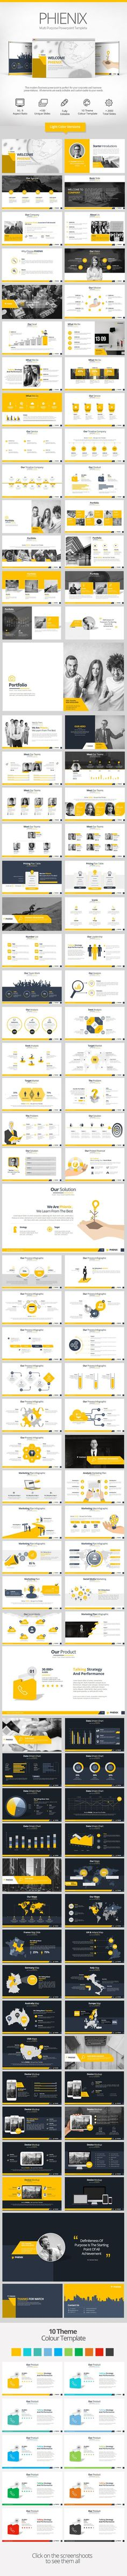 Phienix Powerpoint Presentation Template #design #slides Buy Now…